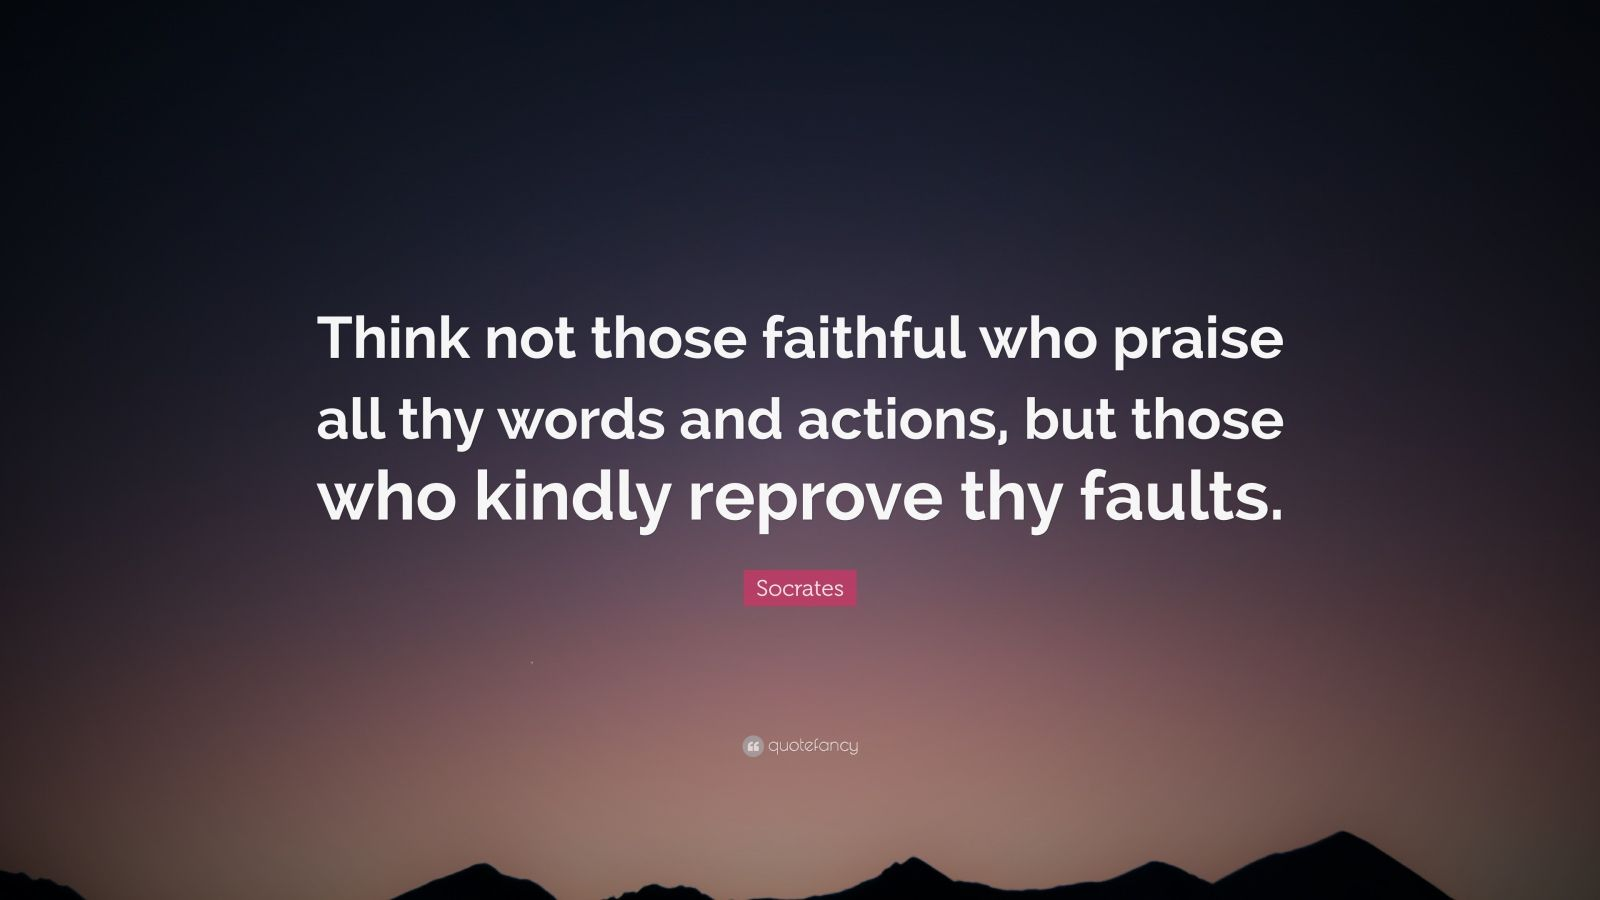 """Socrates Quotes On Marriage: Socrates Quote: """"Think Not Those Faithful Who Praise All"""